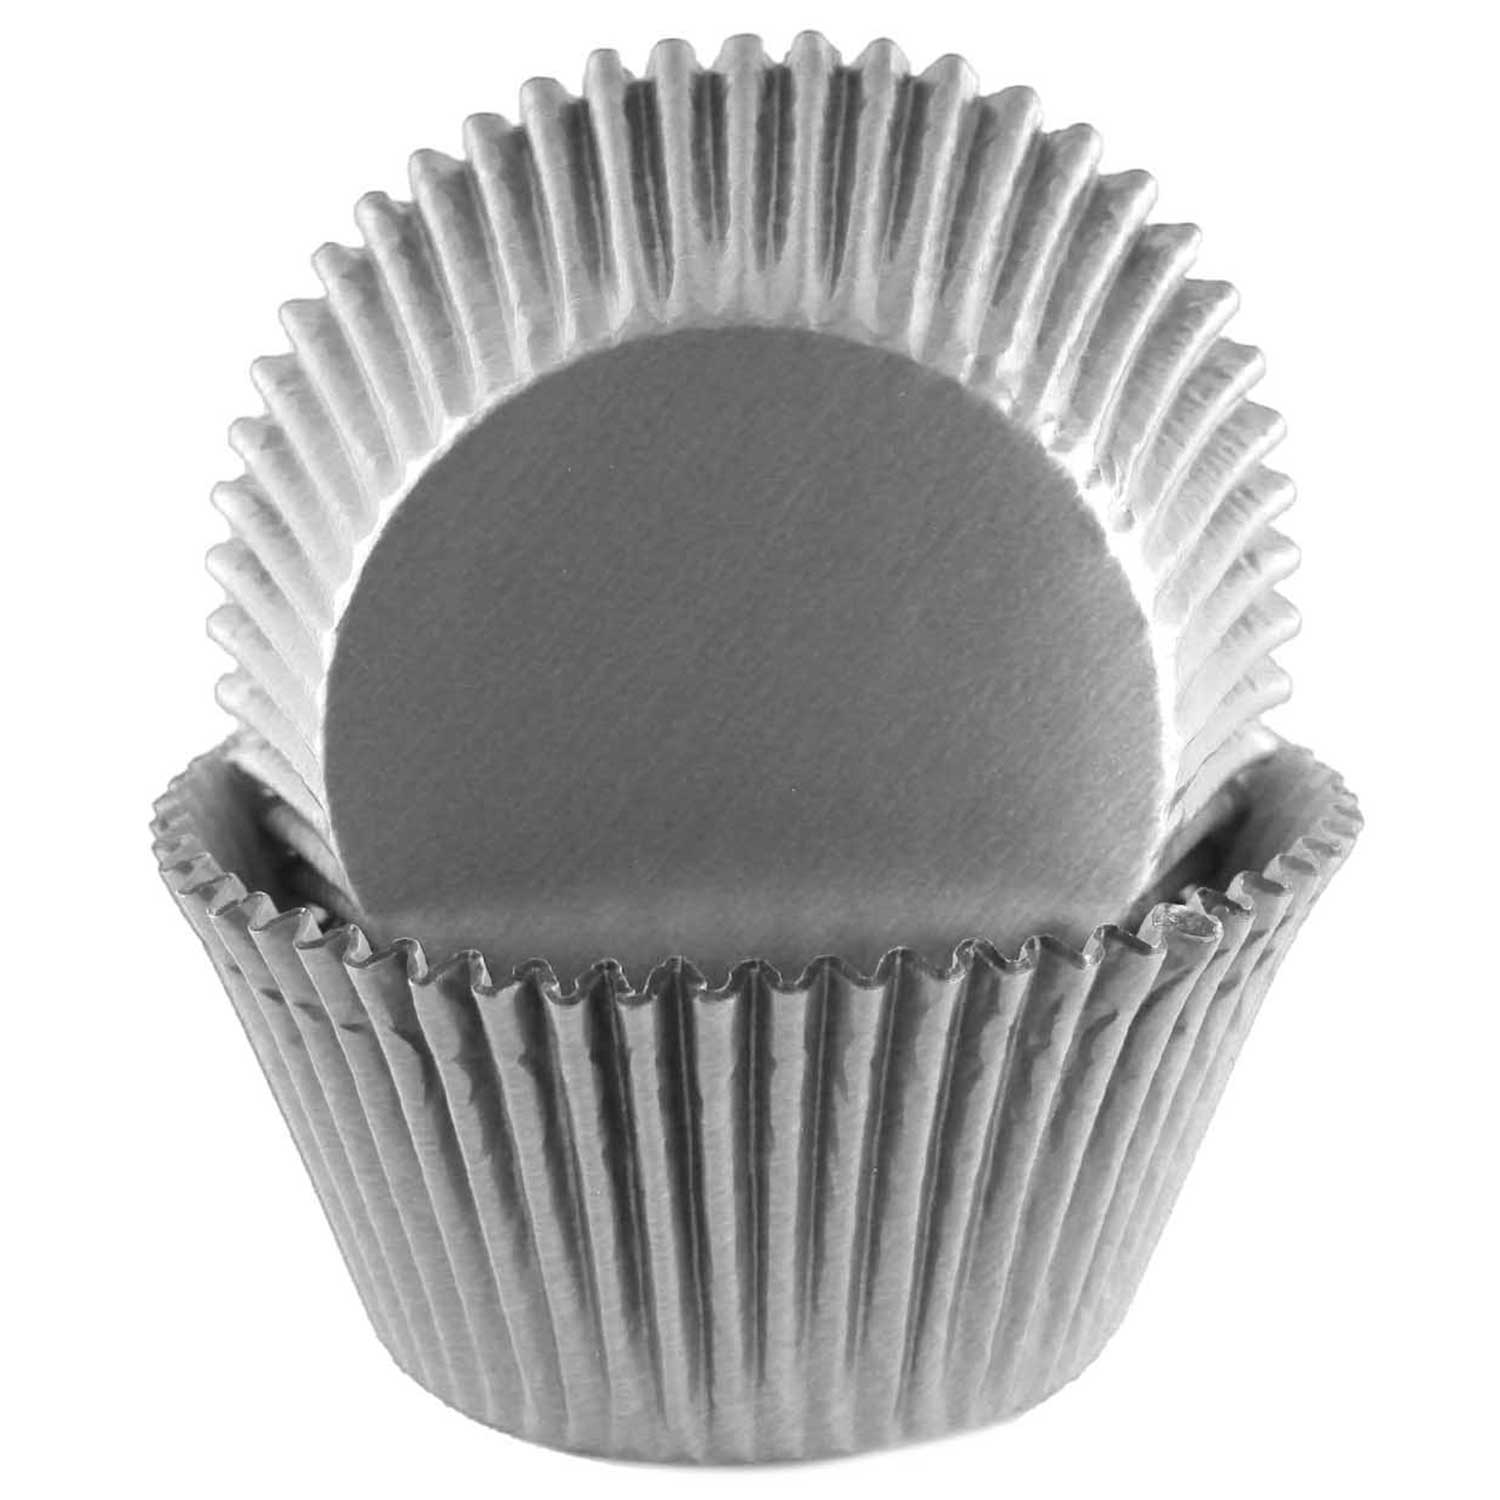 Grey Foil Jumbo Baking Cups